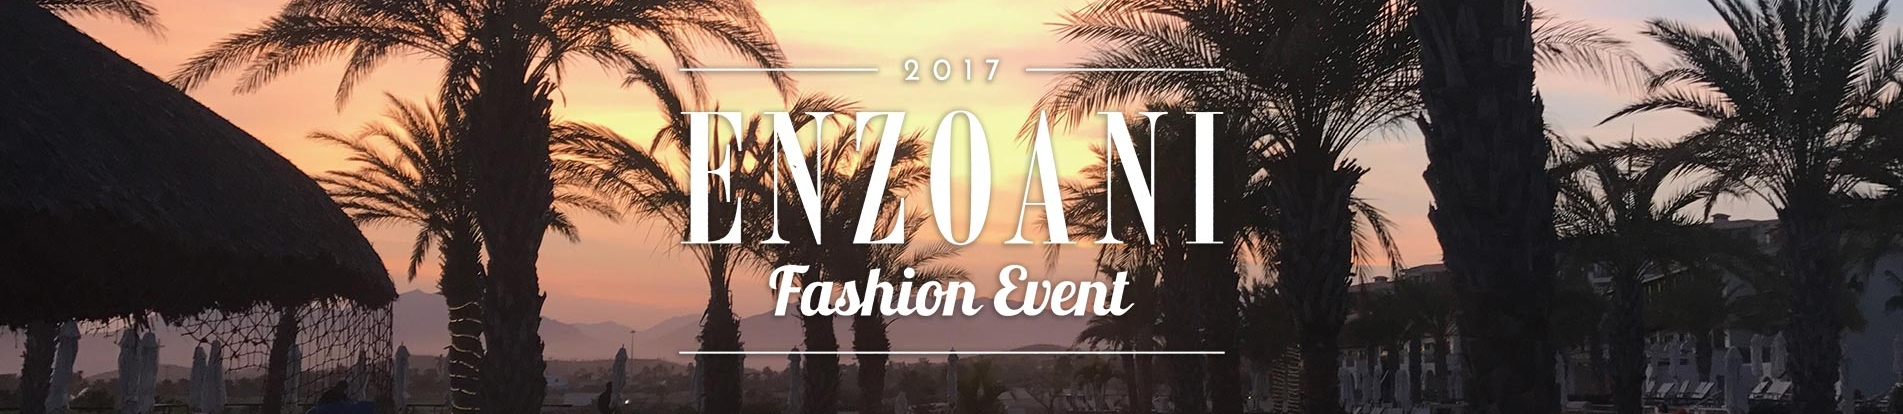 ENZOANI TAKES CABO: INSIDE THE 2017 FASHION EVENT!